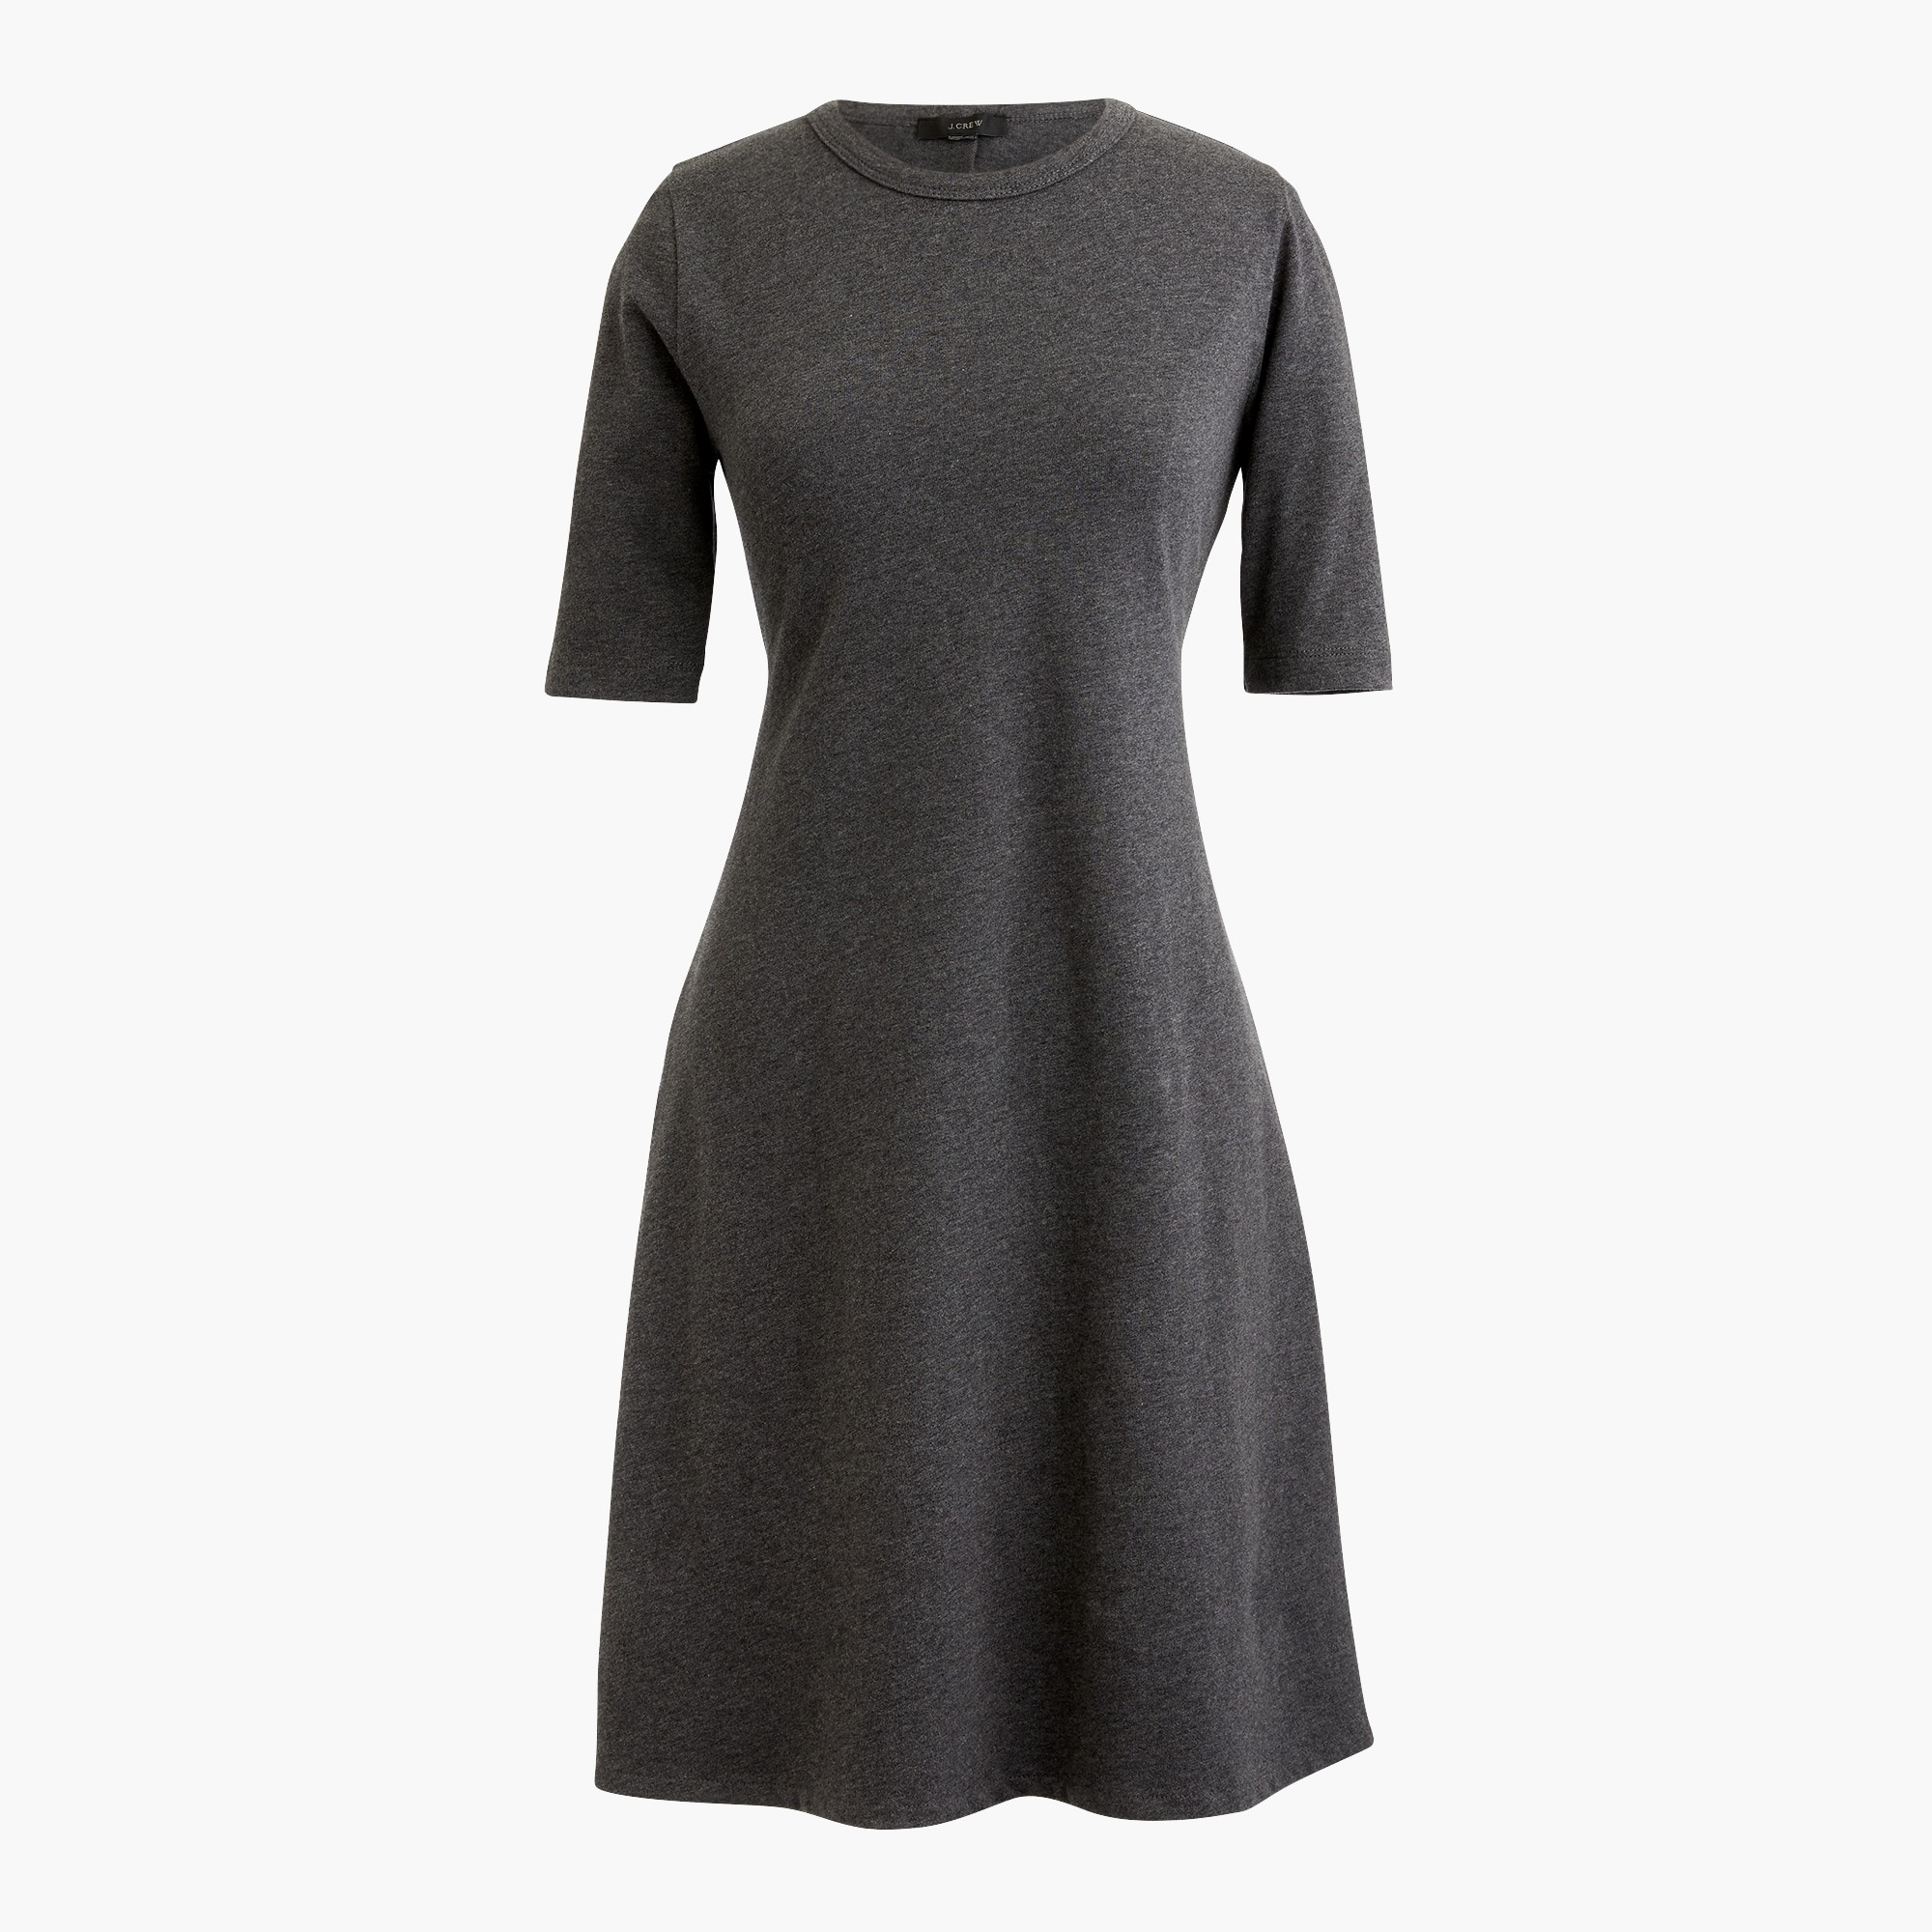 Petite short-sleeve knit dress